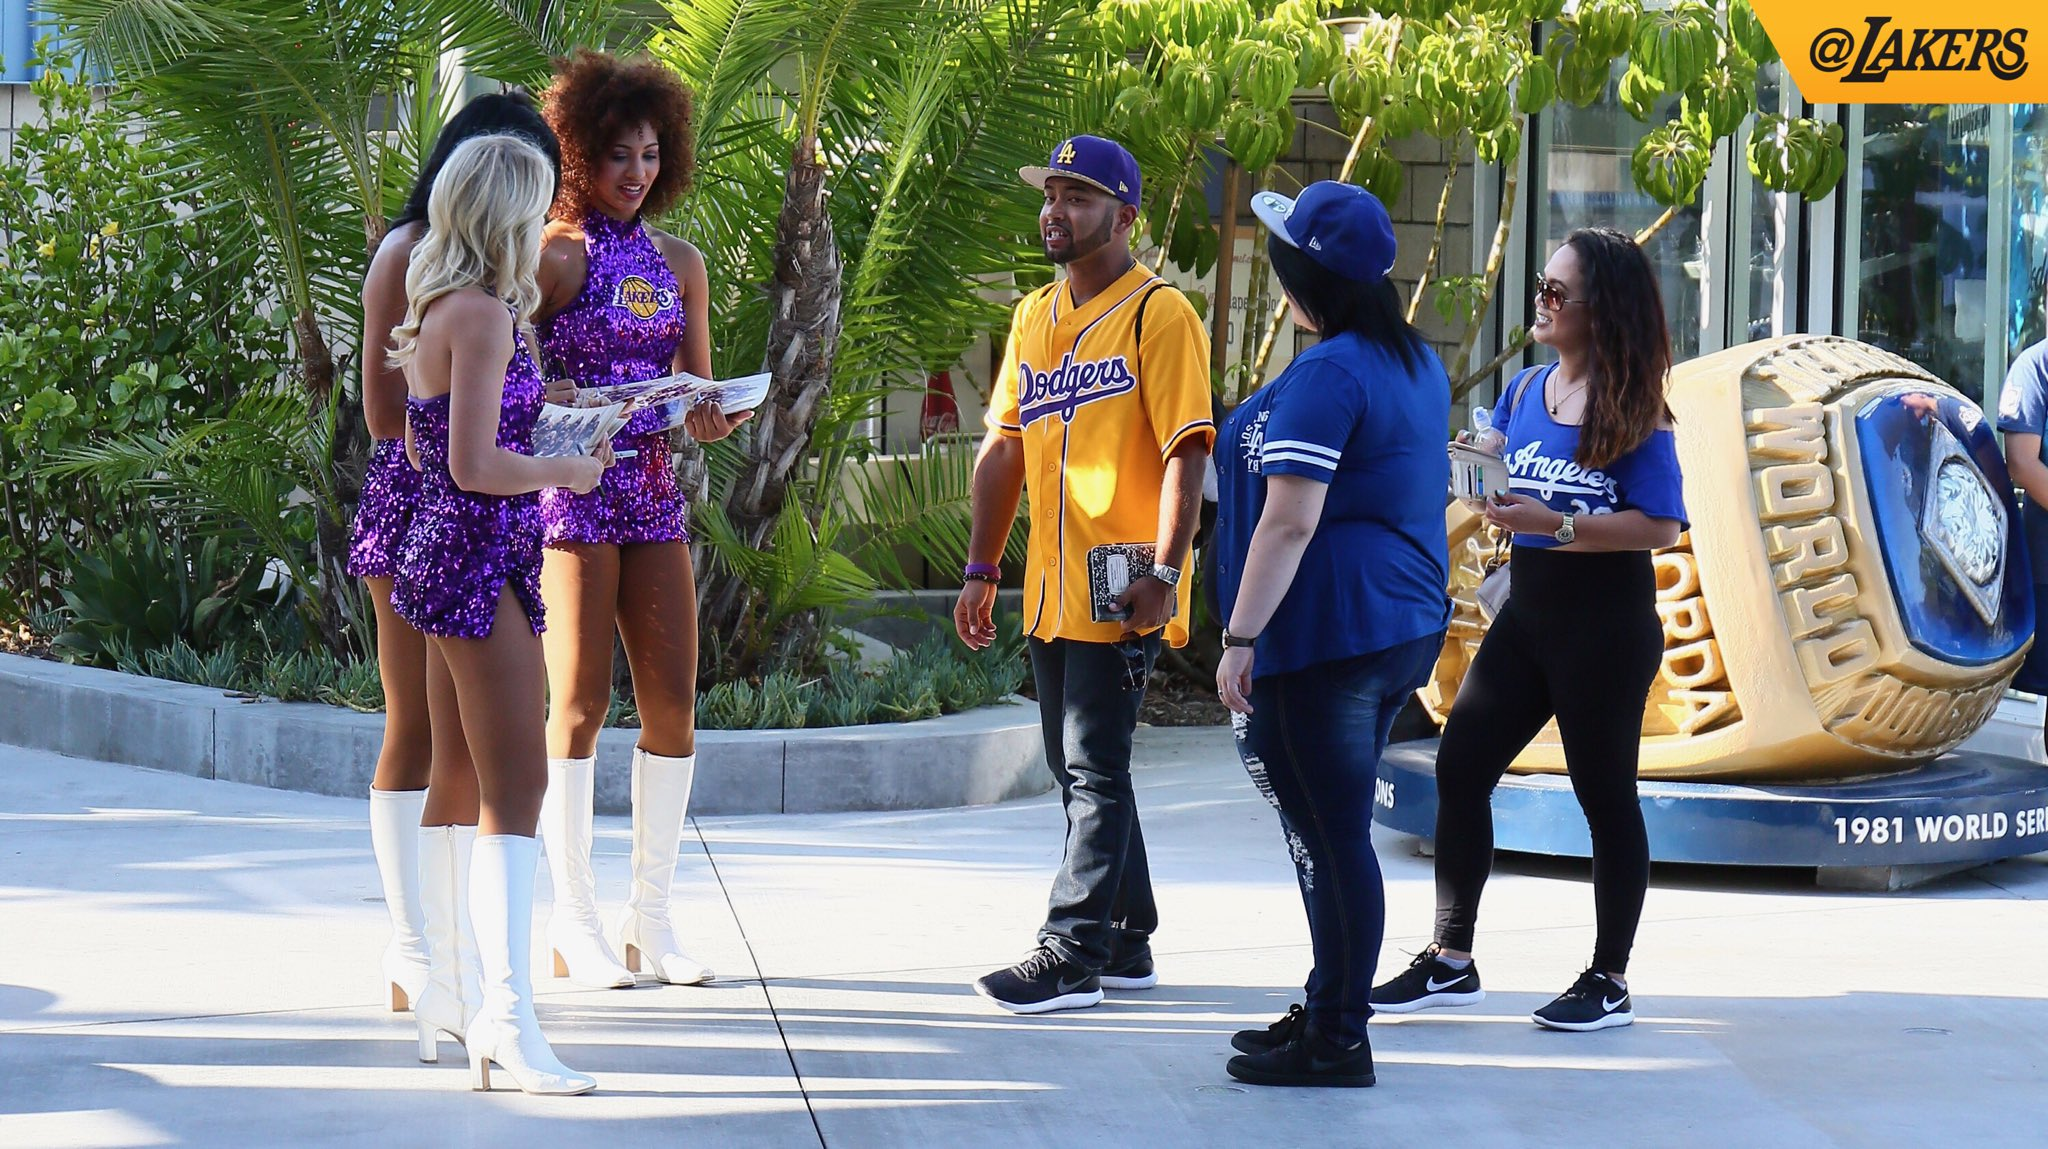 The gates are open for Lakers Night at @Dodgers Stadium. https://t.co/ujgOu7QfTw